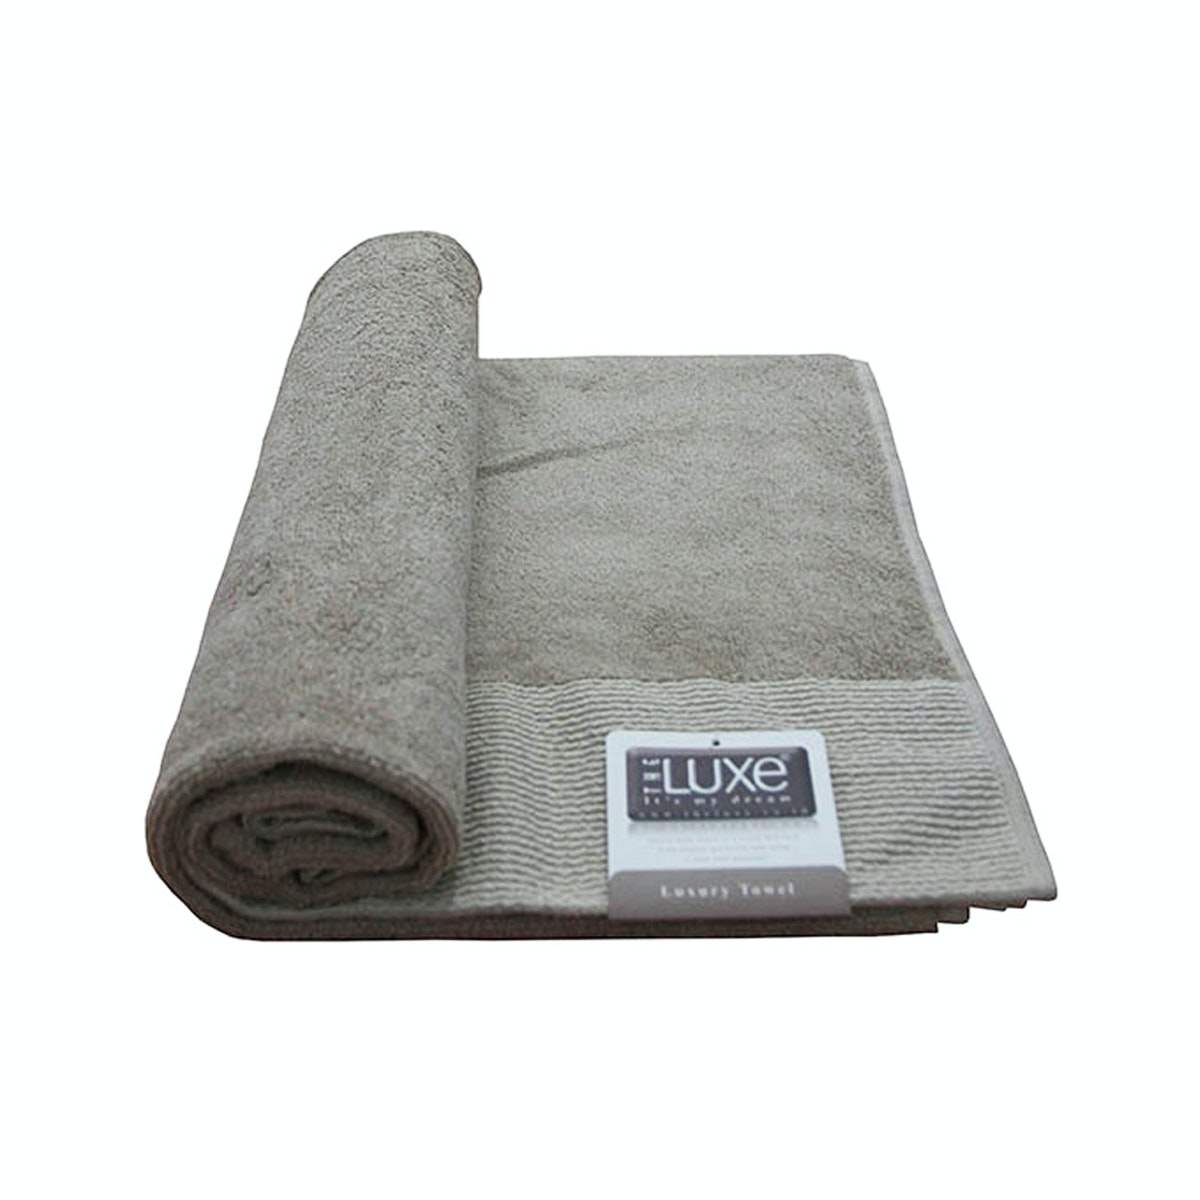 The Luxe Luxury Bath Towel – Beige